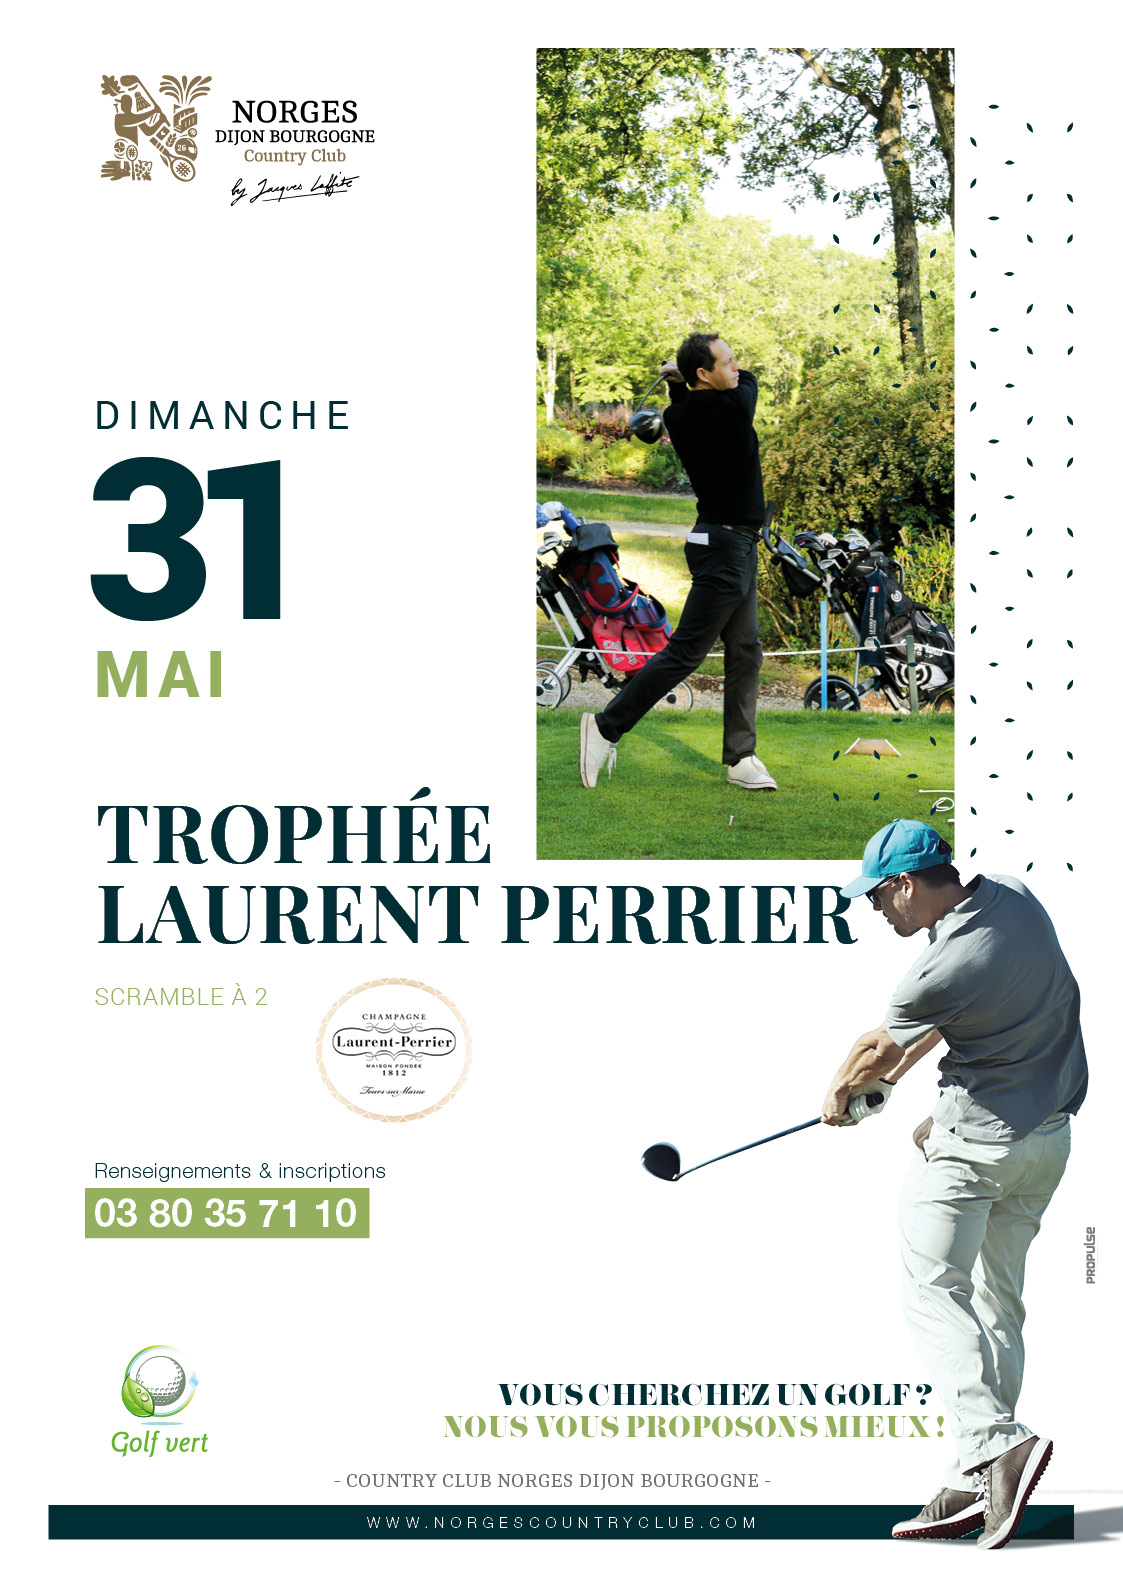 Trophée Laurent Perrier